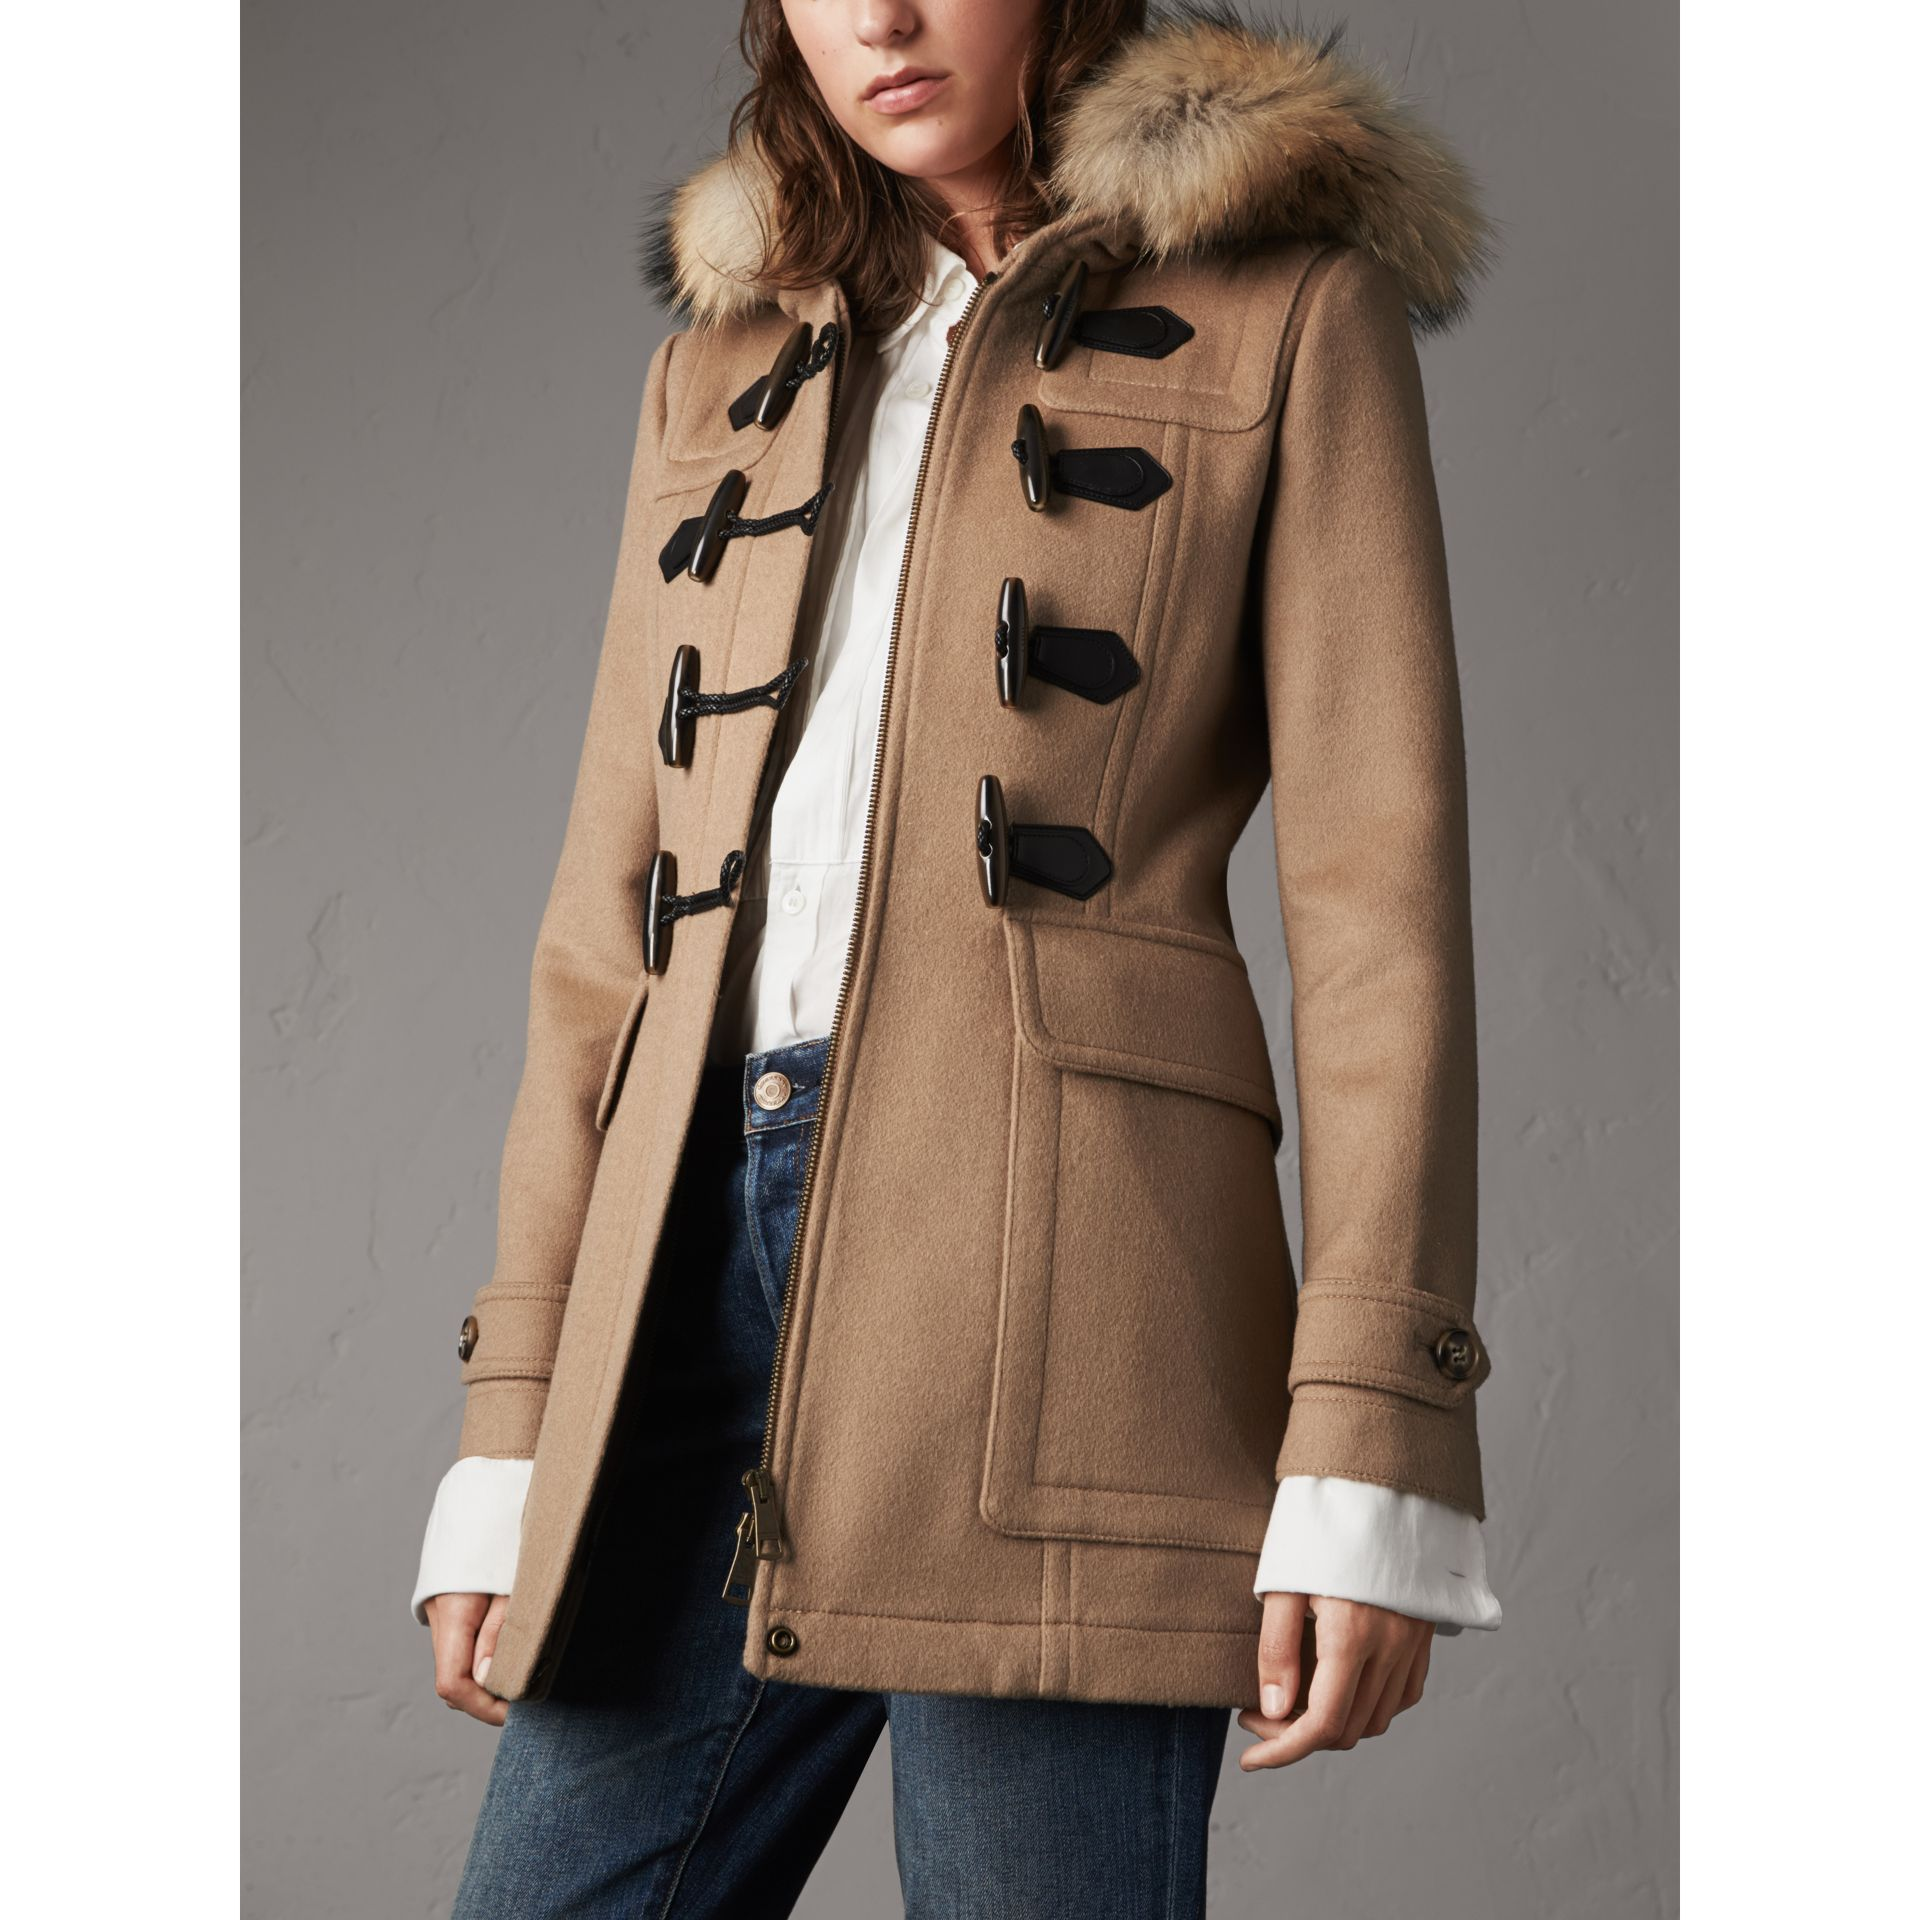 Duffle-coat en laine avec bordure en fourrure amovible (Camel) - Femme | Burberry - photo de la galerie 5